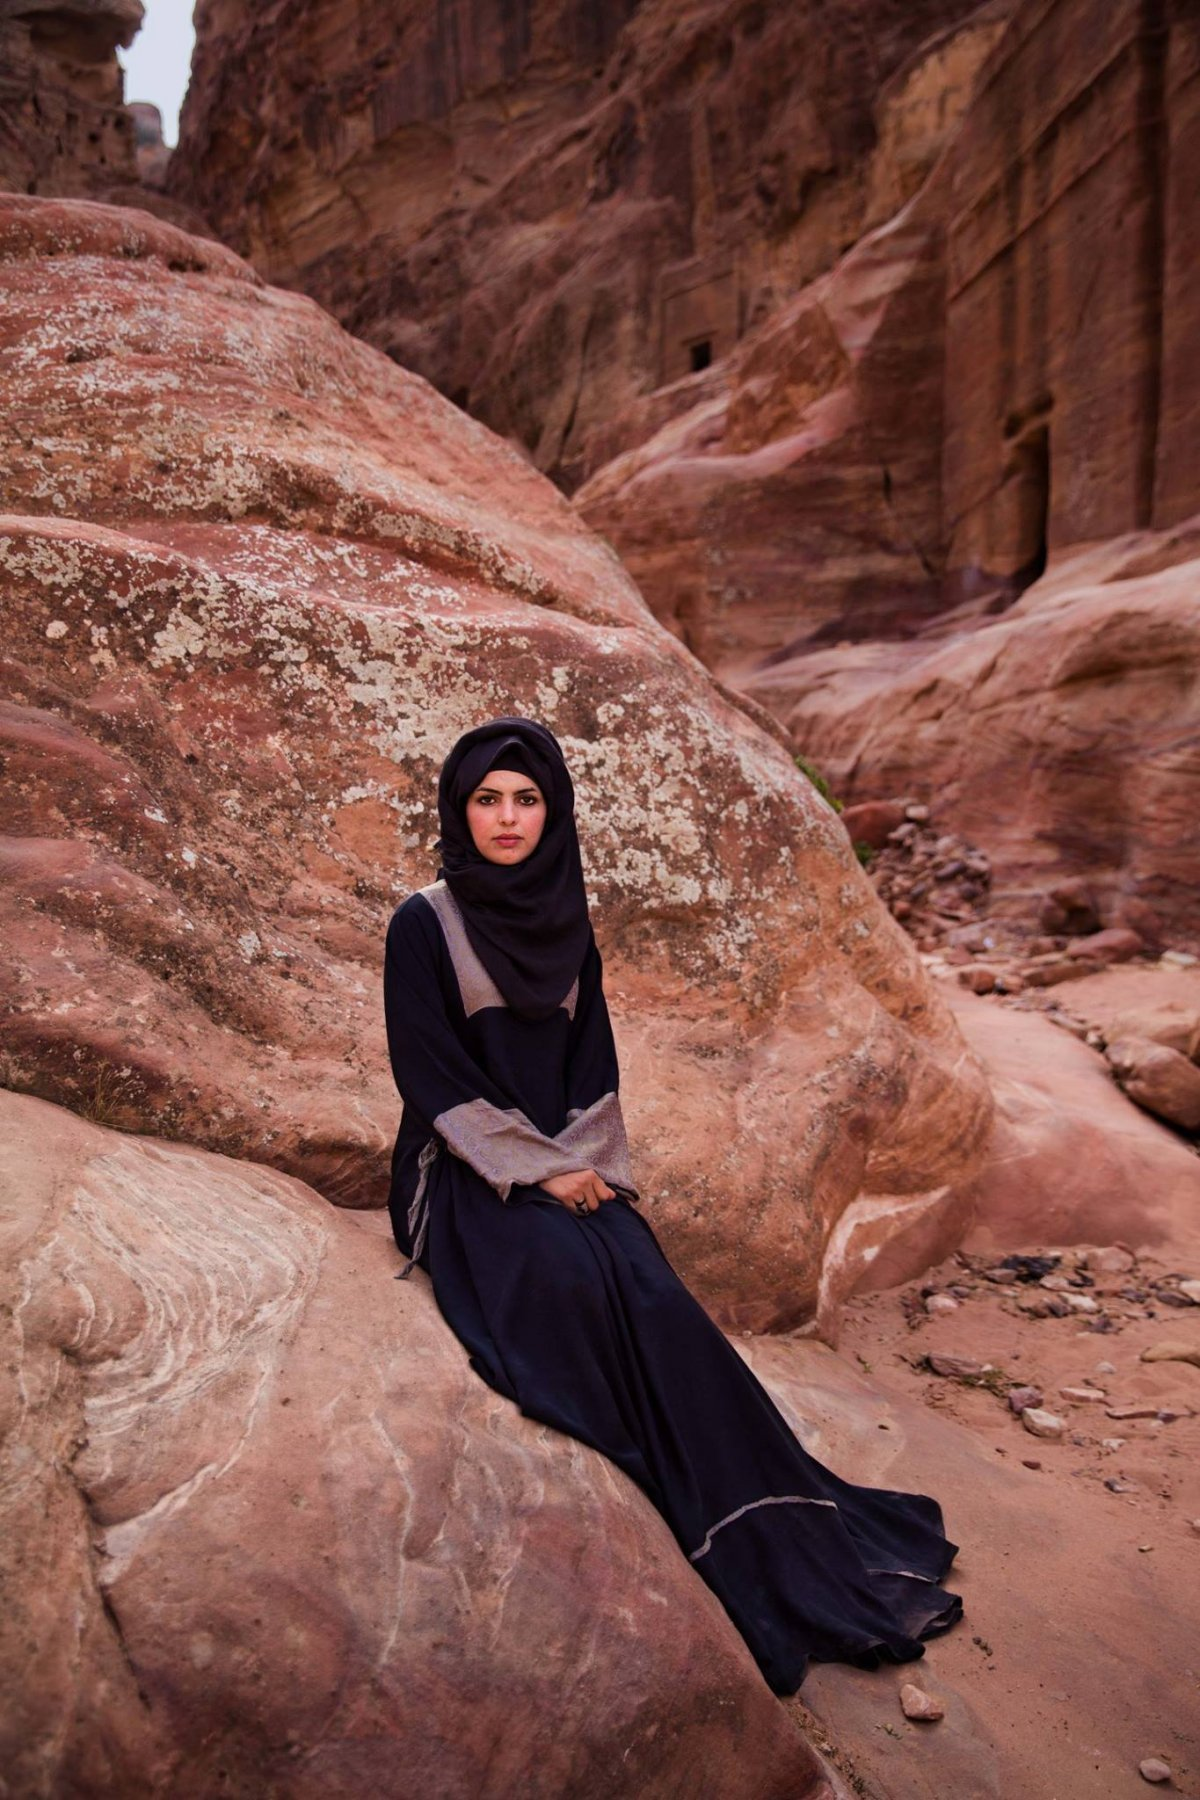 A Bedouin woman in Petra, Jordan photographed by Mihaela Noroc